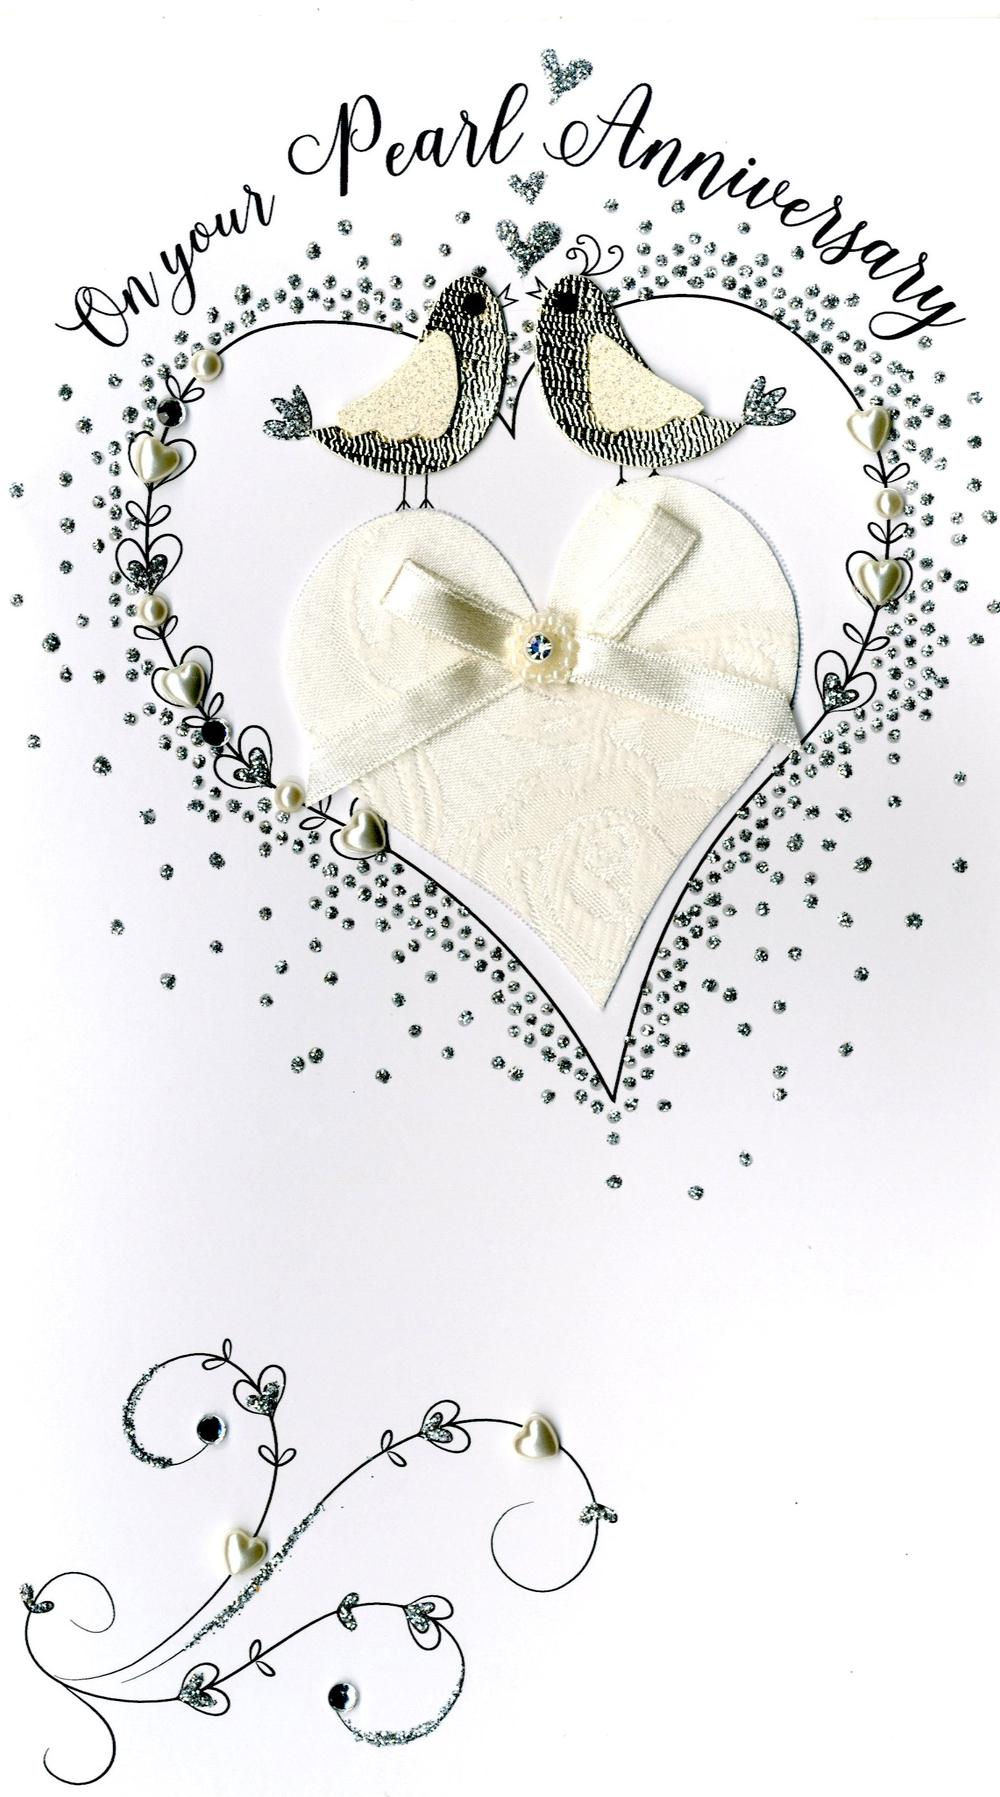 Pearl 30th Anniversary Greeting Card